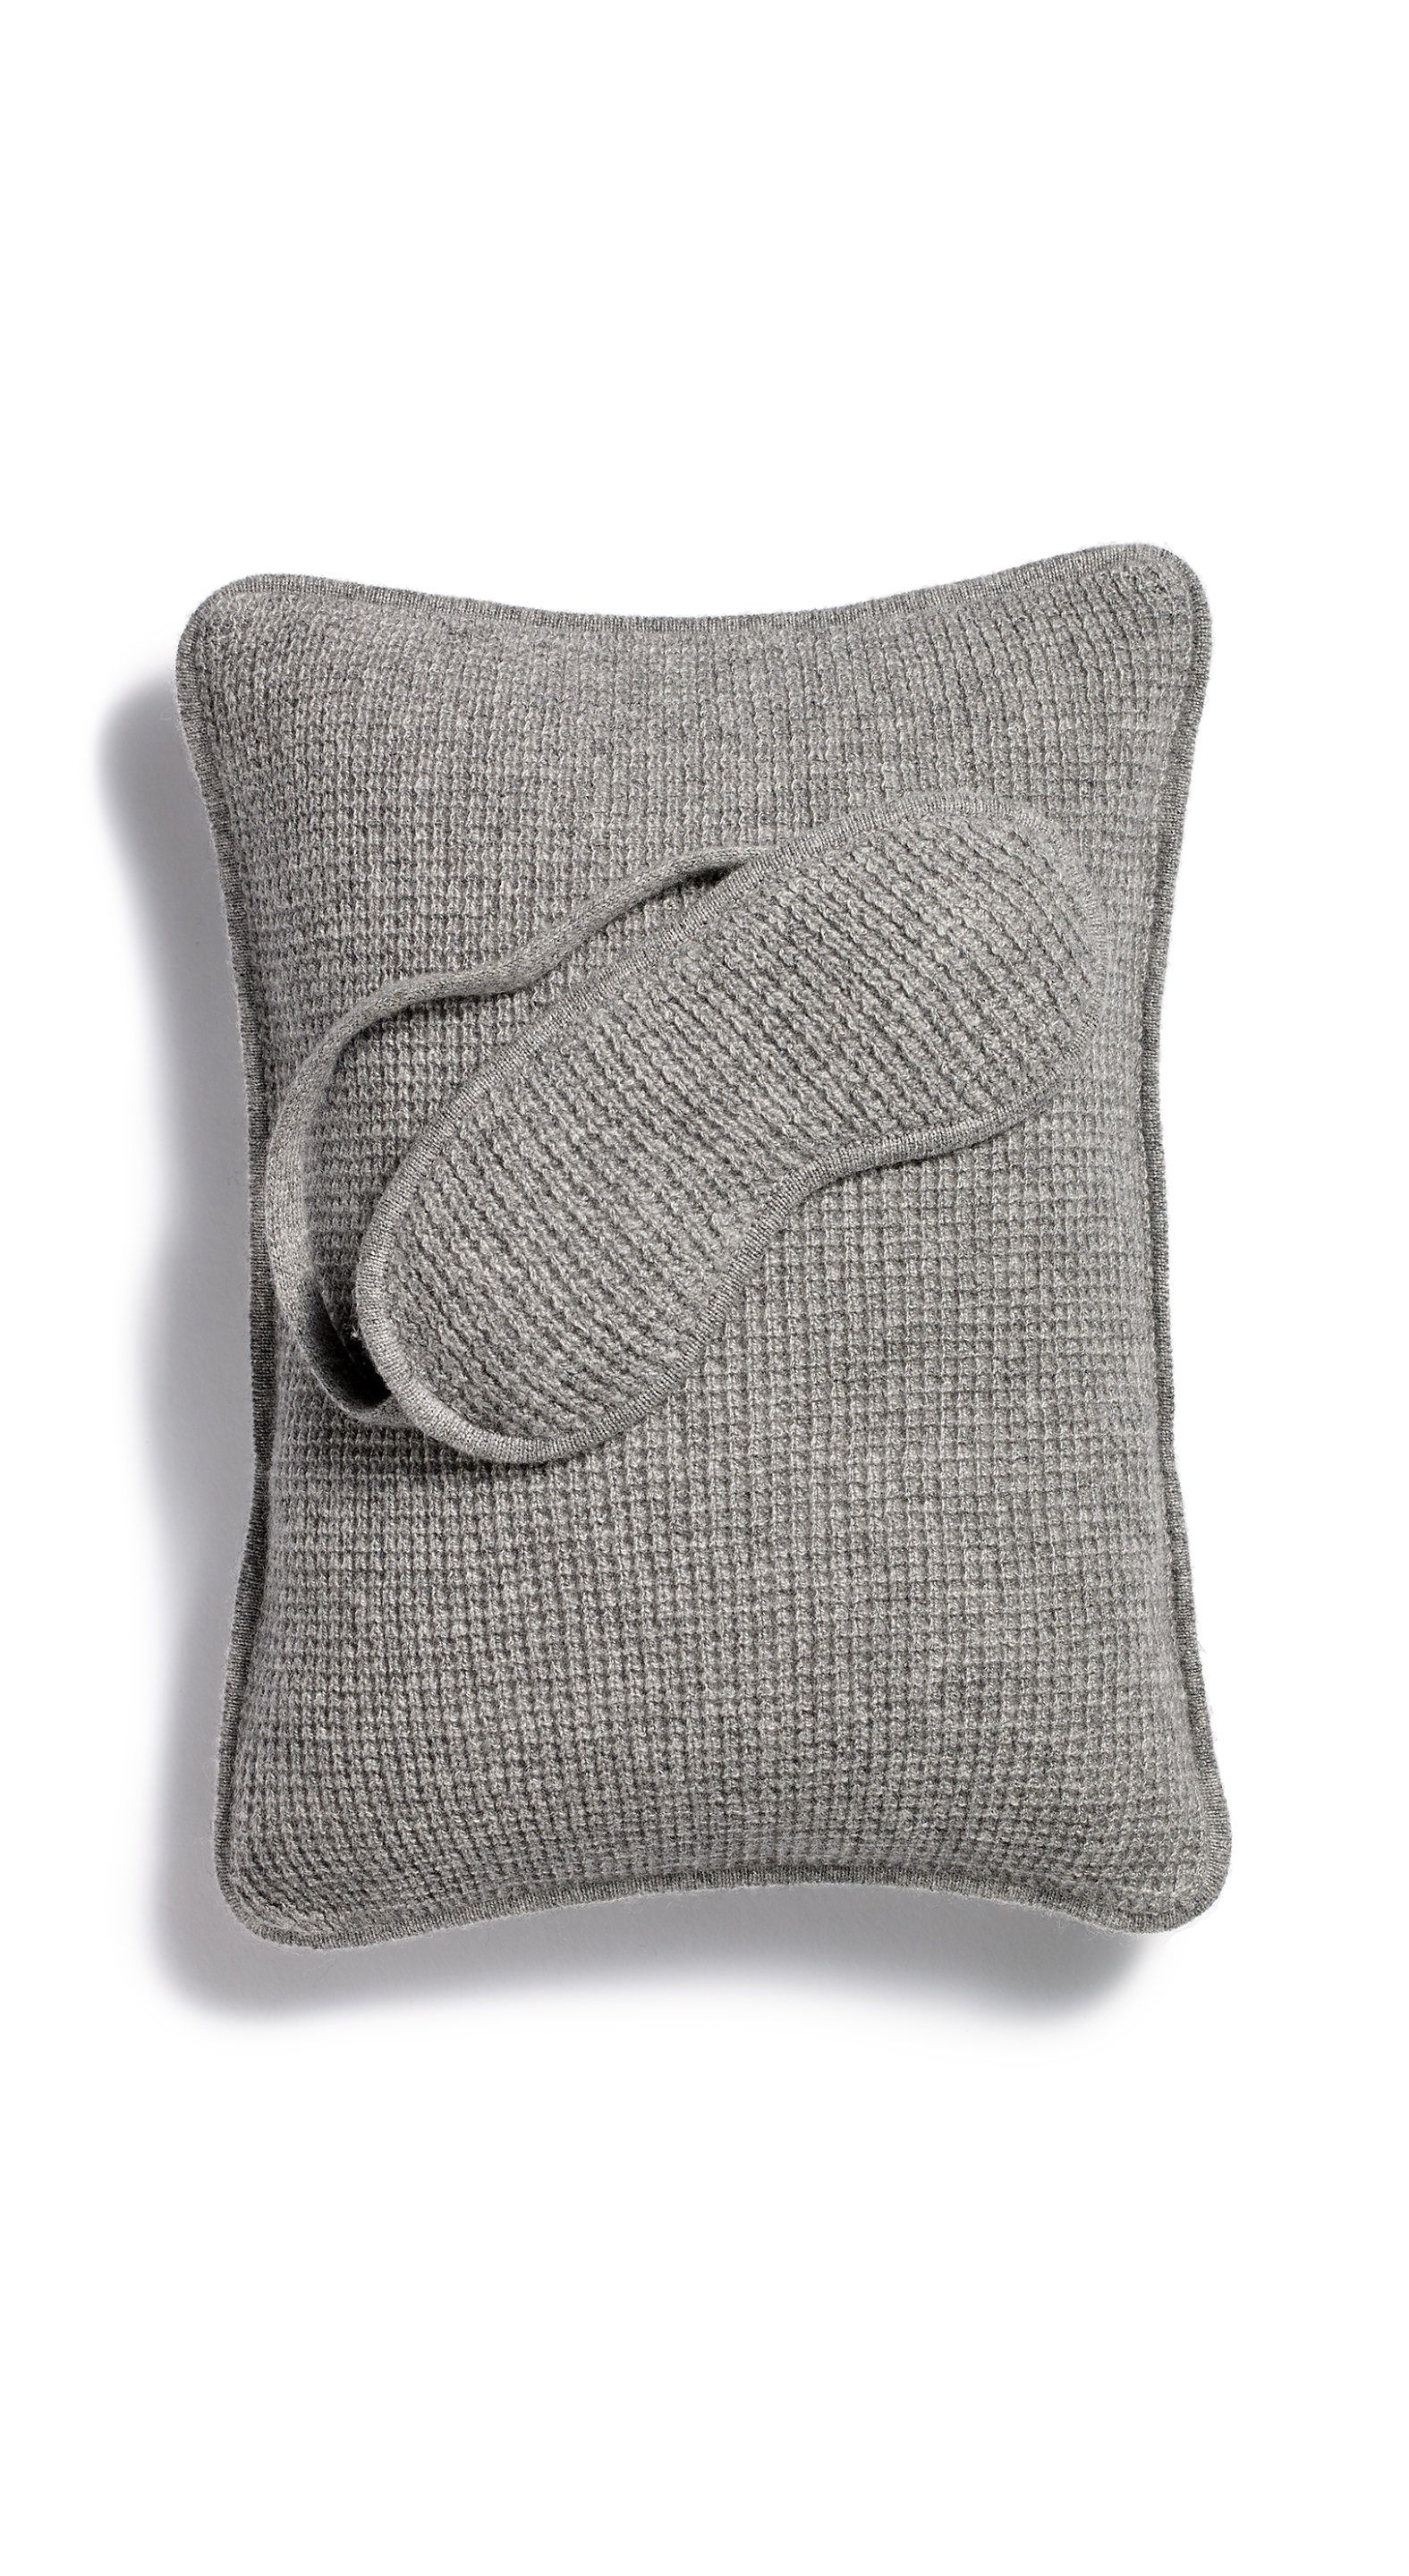 The perfect gift for the avid traveler cashmere eye mask u pillow